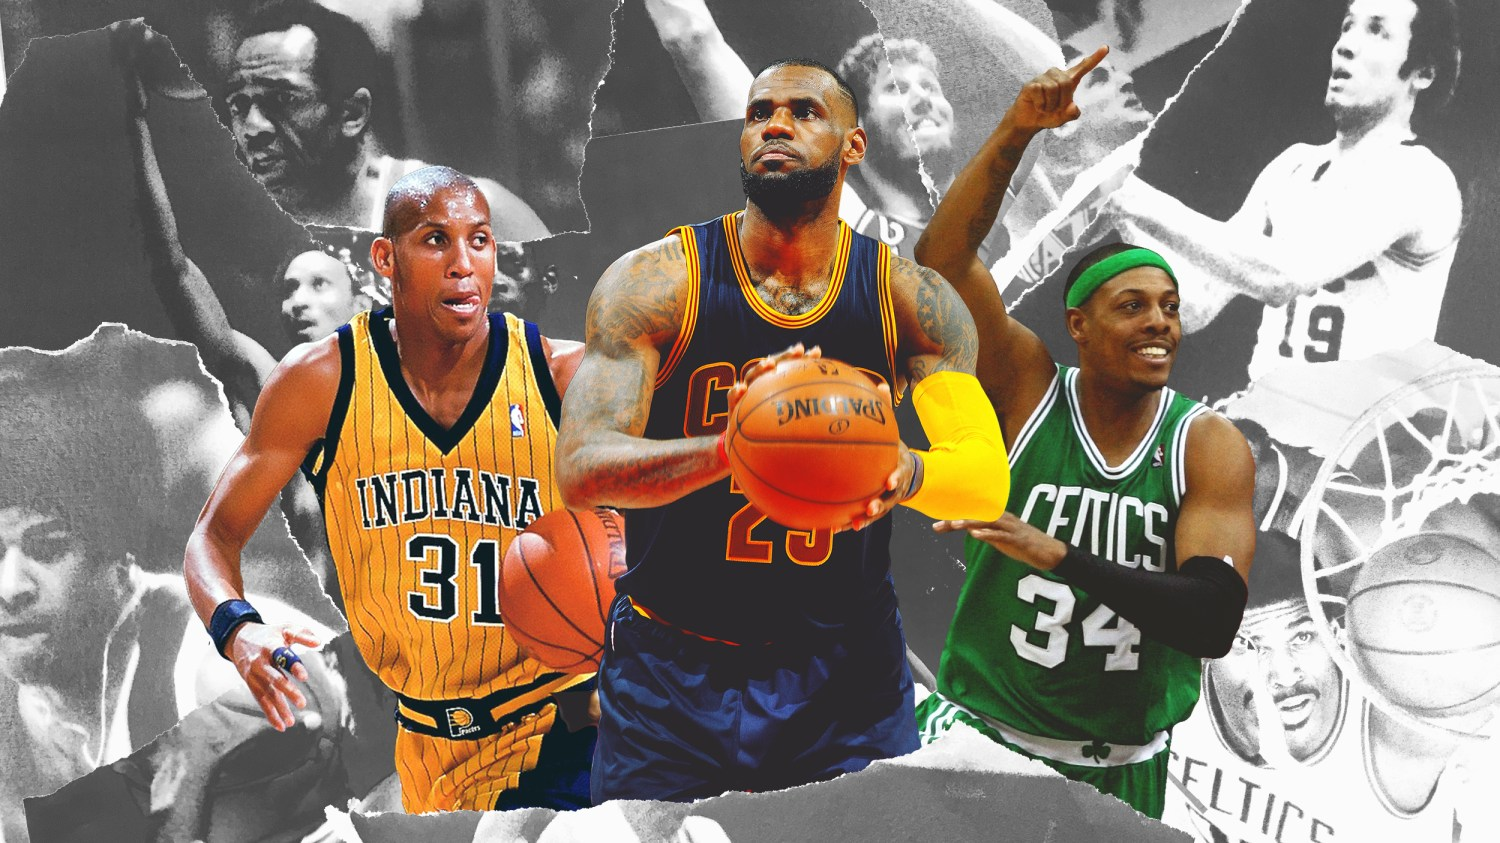 The Nba S 50 Greatest Players List The Remix The Undefeated